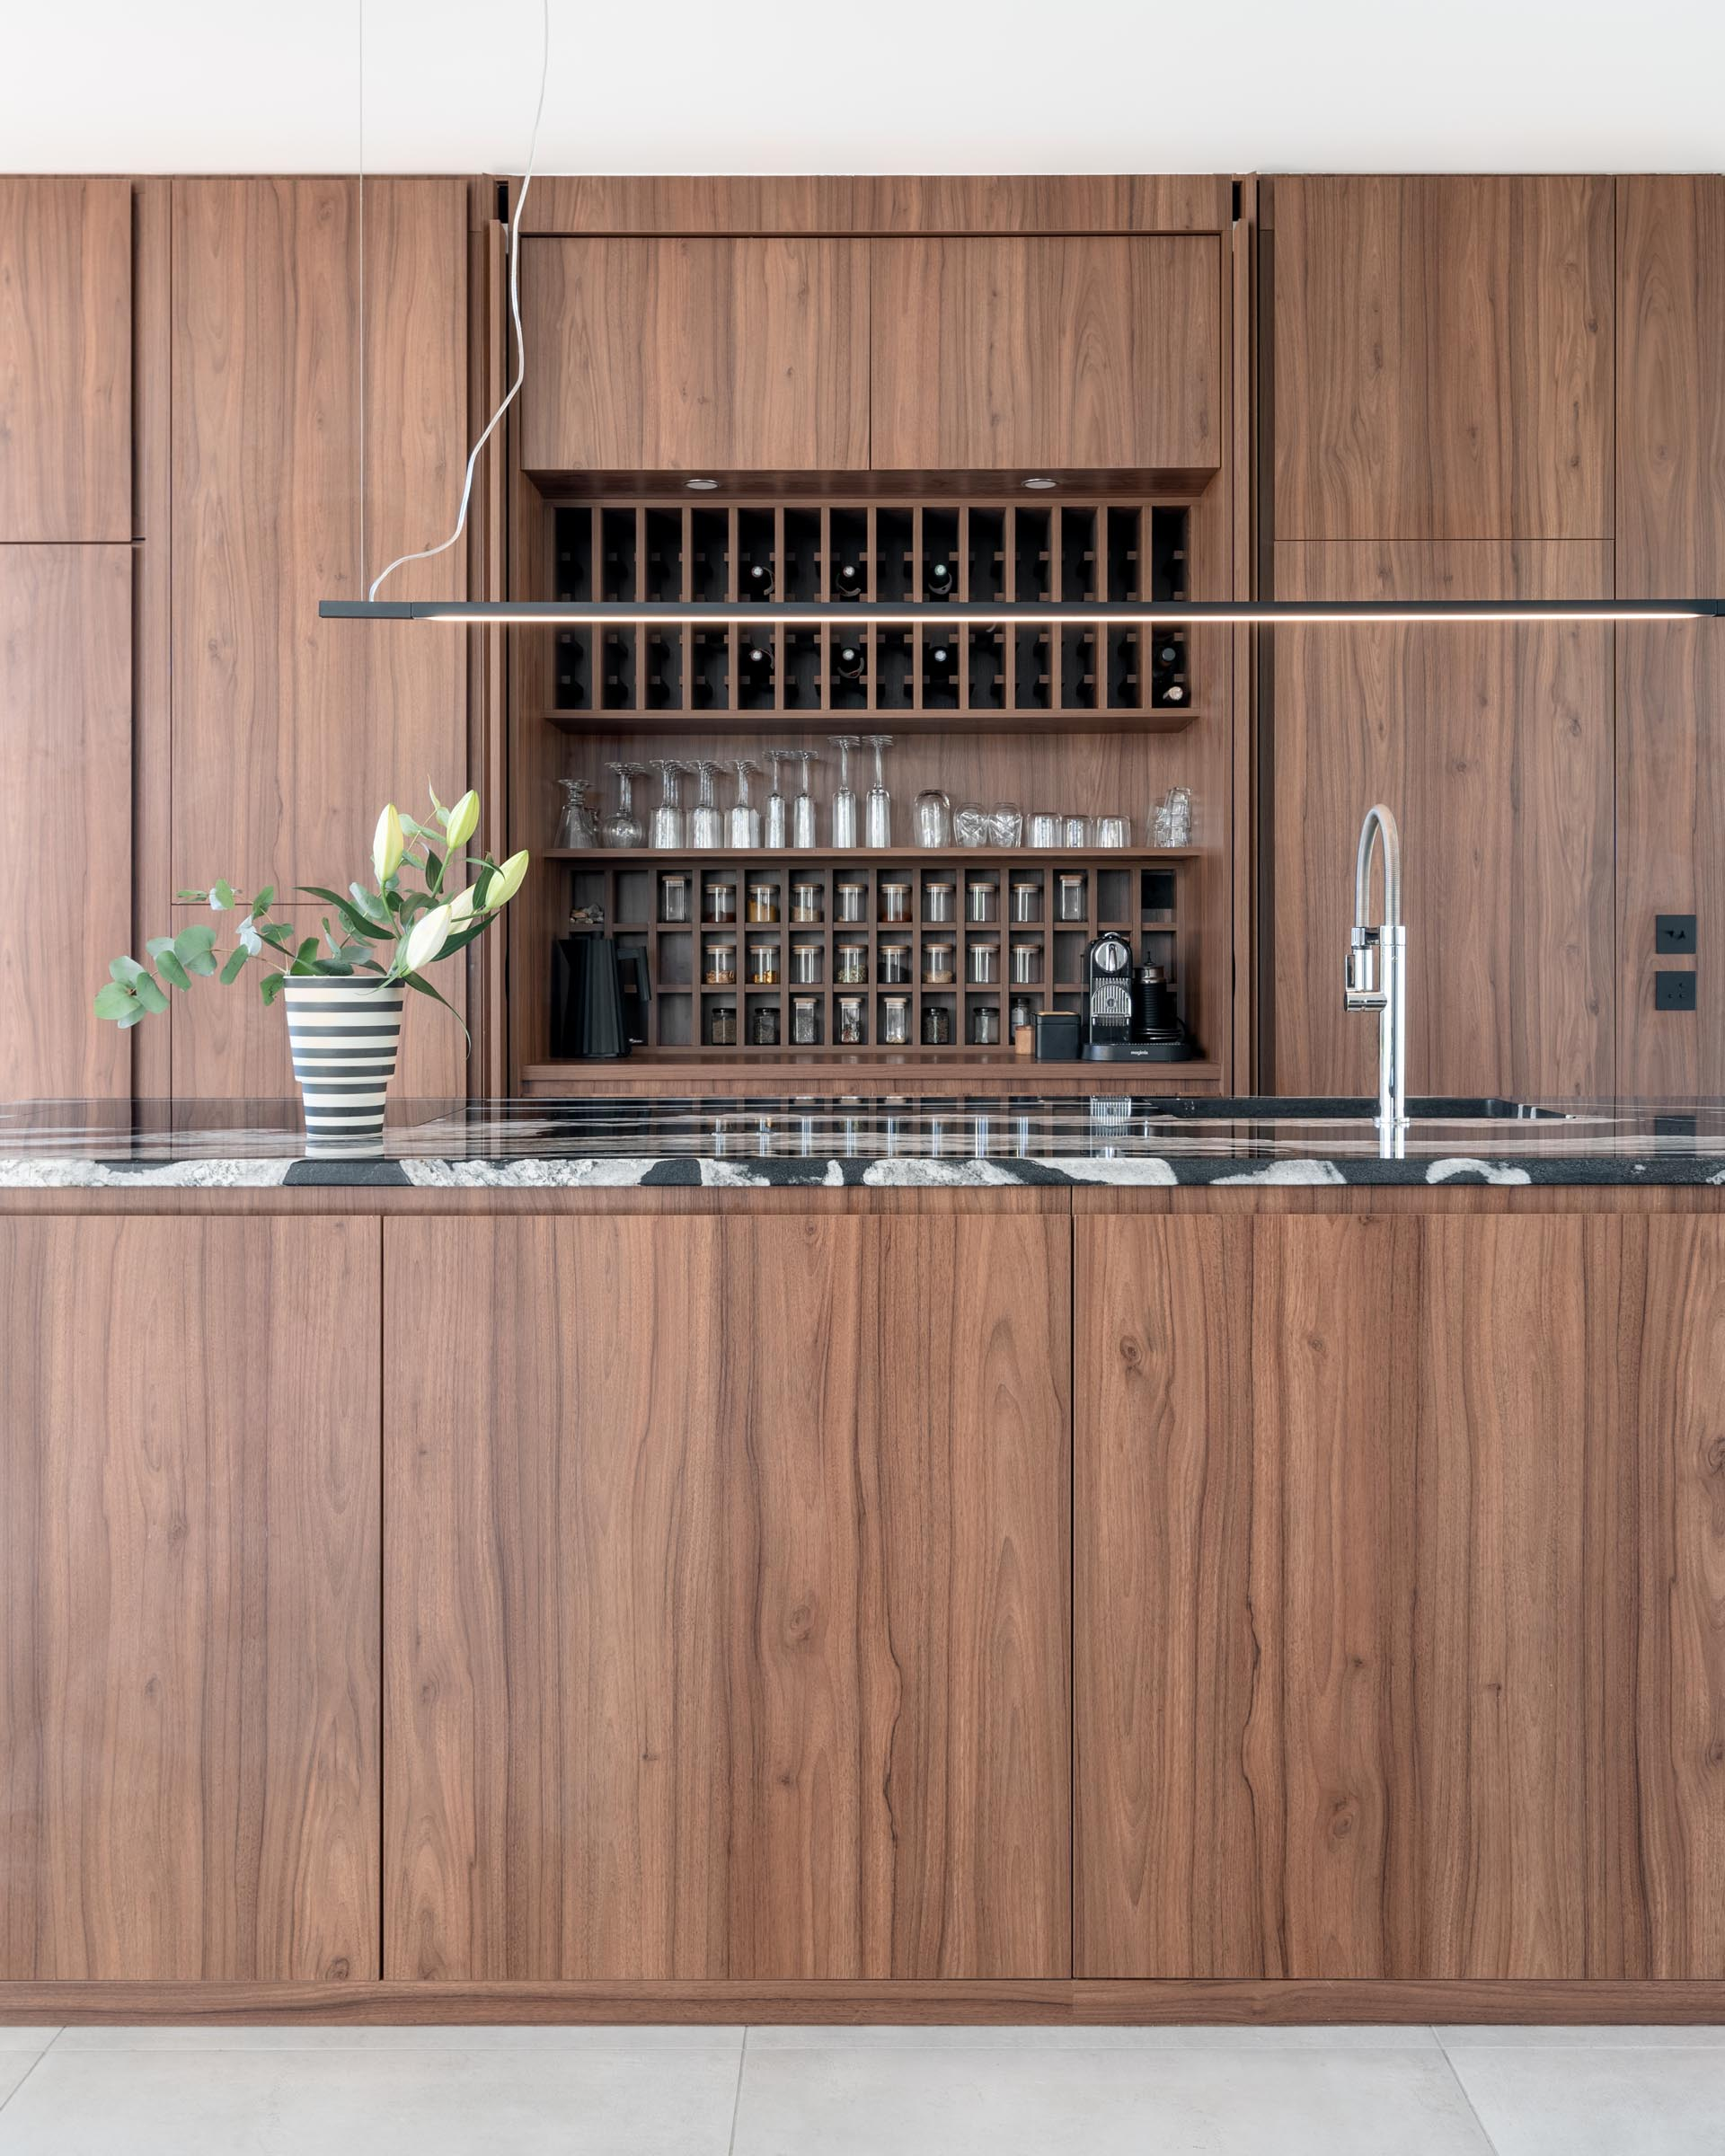 In this modern kitchen, minimalist warm wood cabinets have been used along the wall and the island. Hidden within a pair of the hardware free cabinets are shelving that's designed to hold wine bottles, glassware, and spice jars.